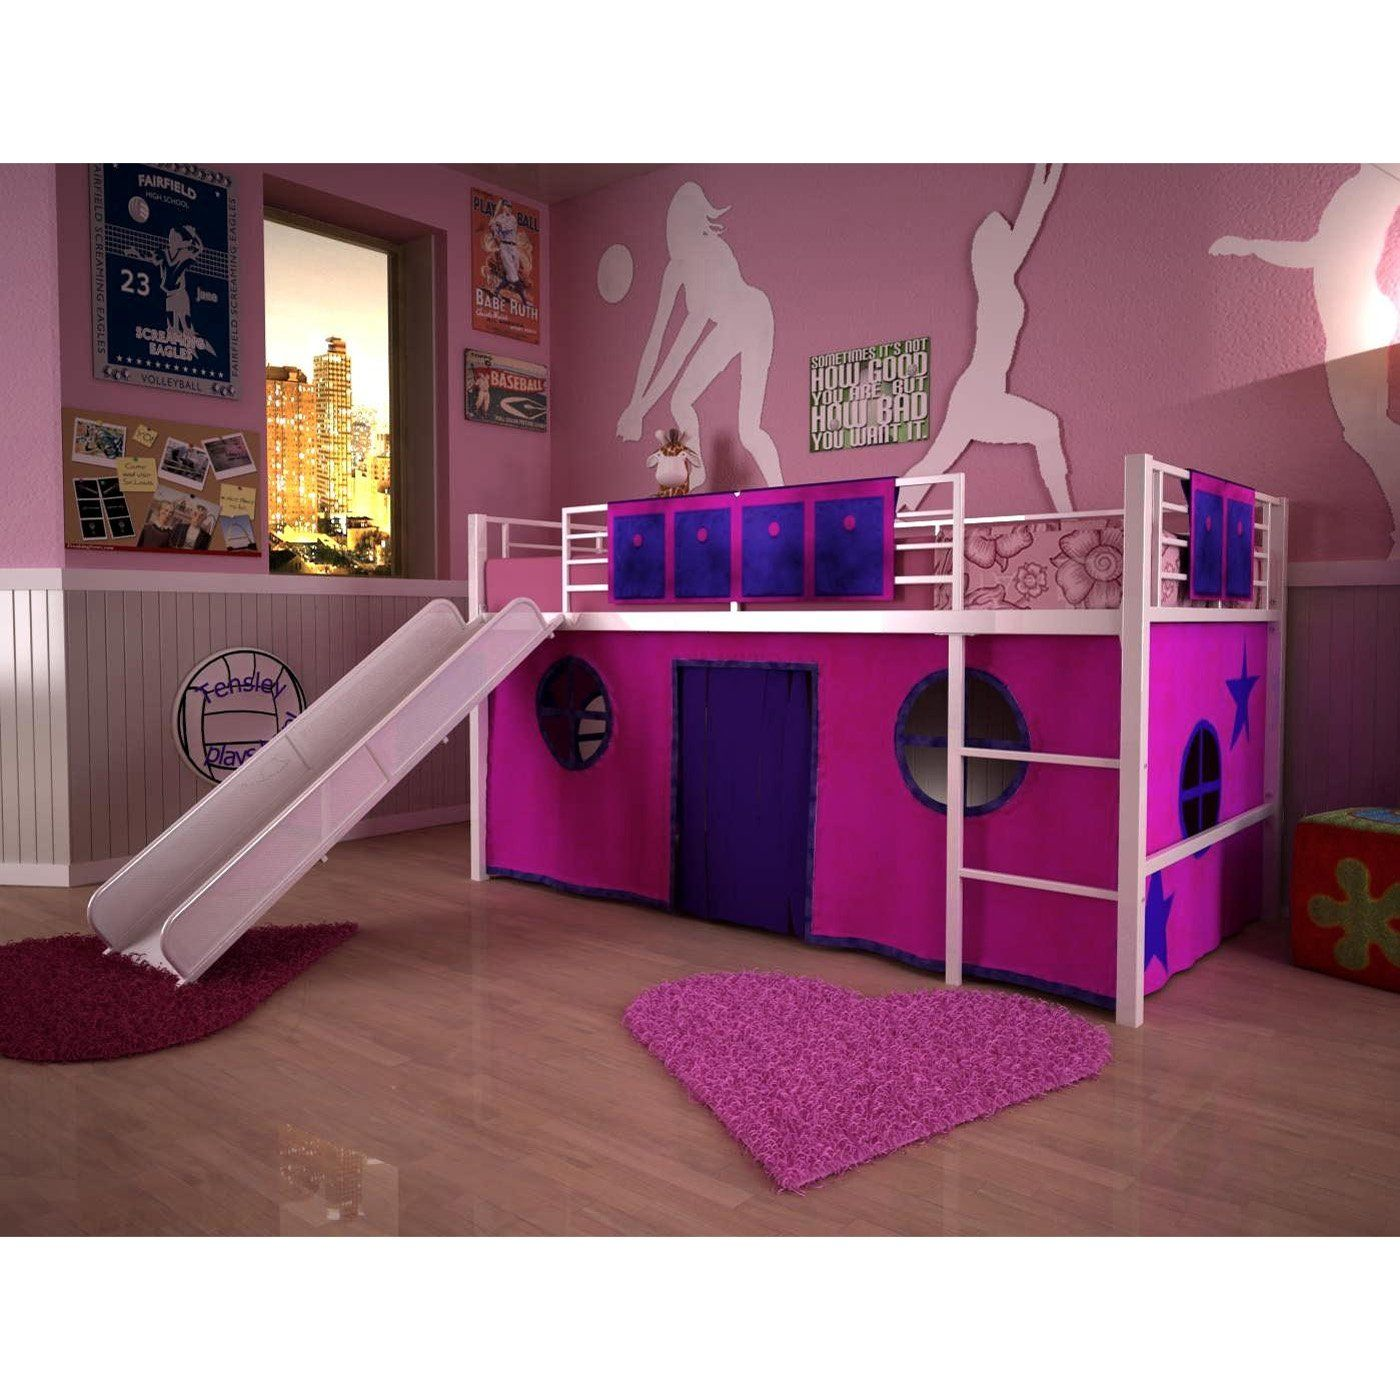 Pink loft beds for teenagers loft beds for